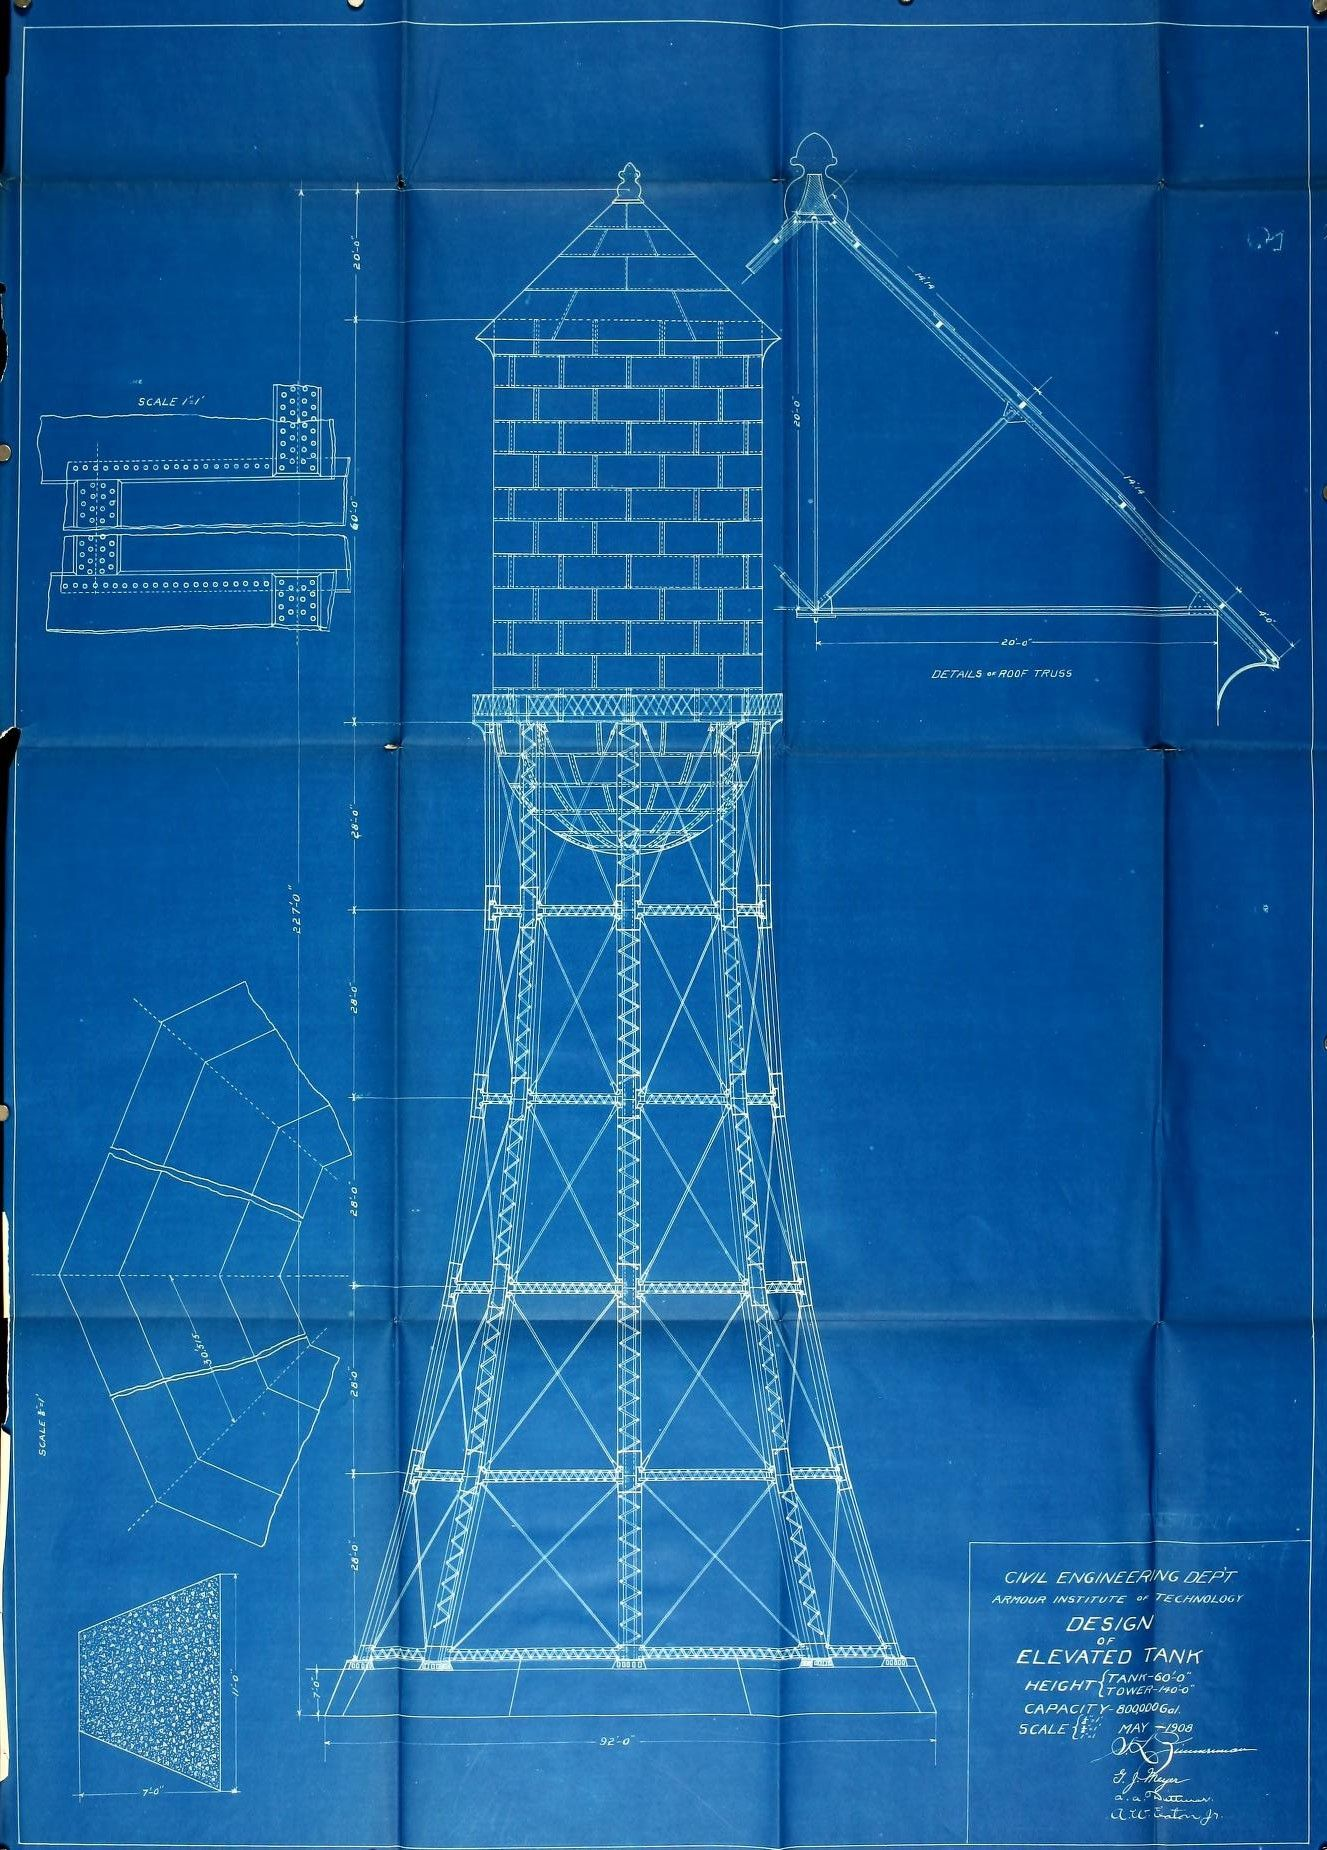 elevated water tower blueprint, 1850 | Blueprints and